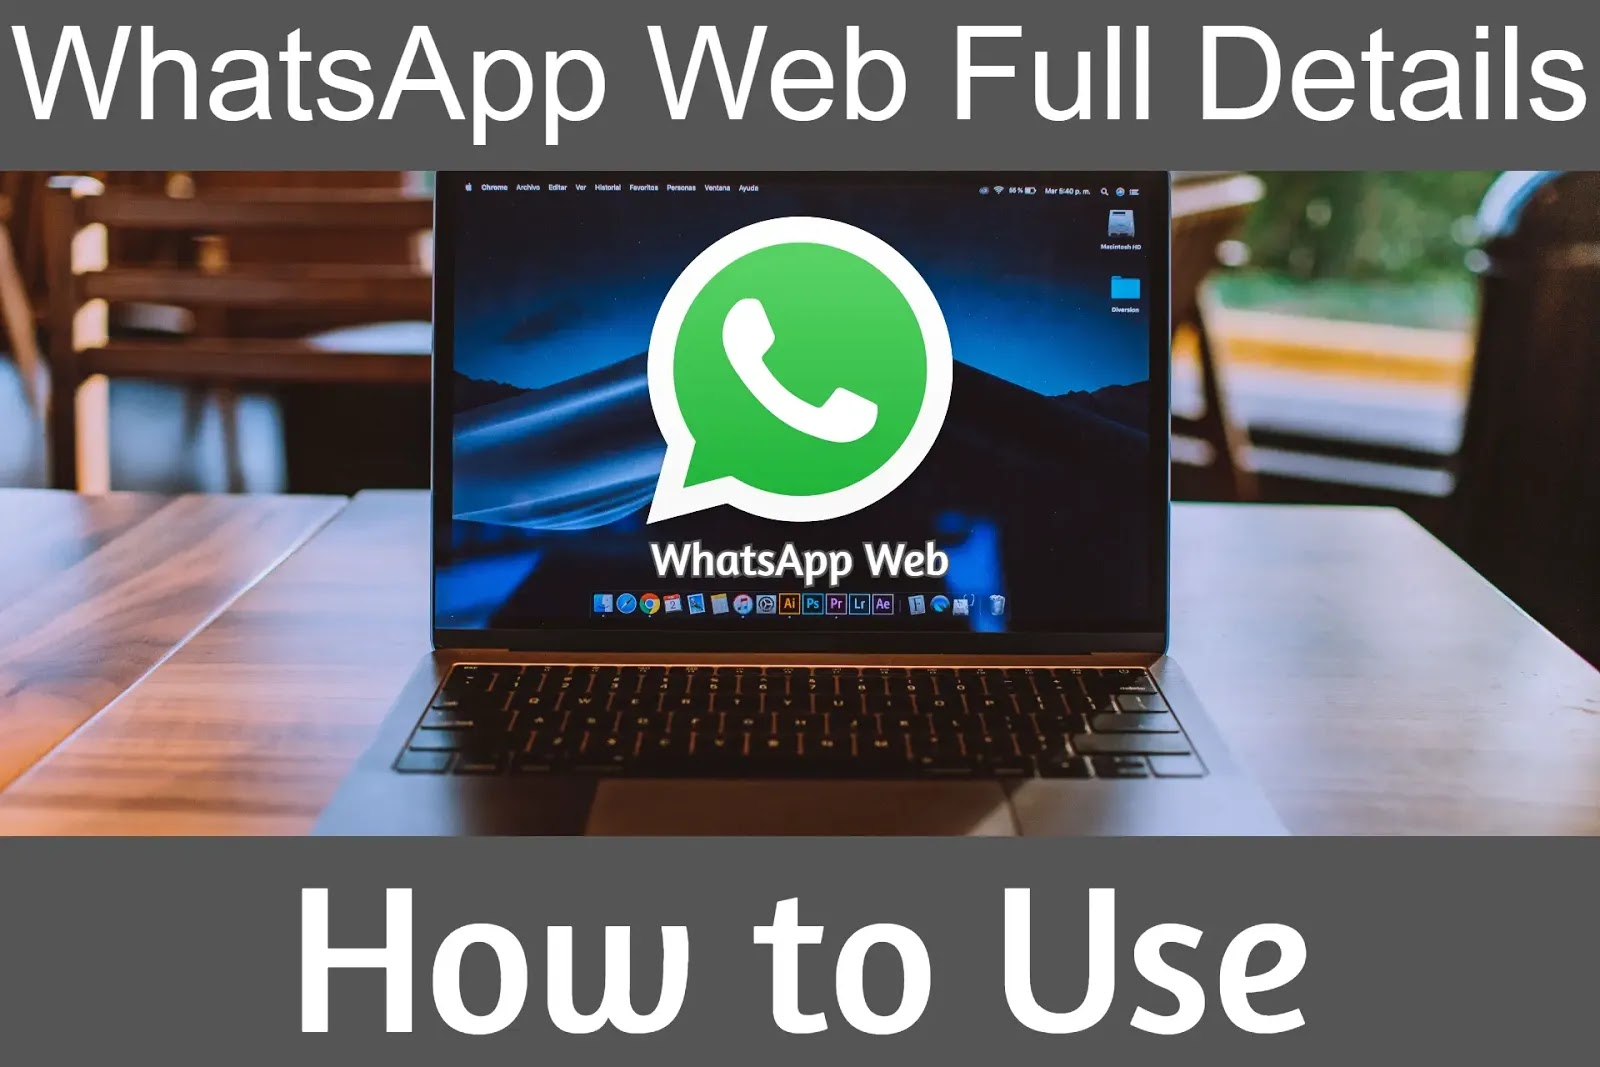 WhatsApp Web: How to Use and Full Details 2020